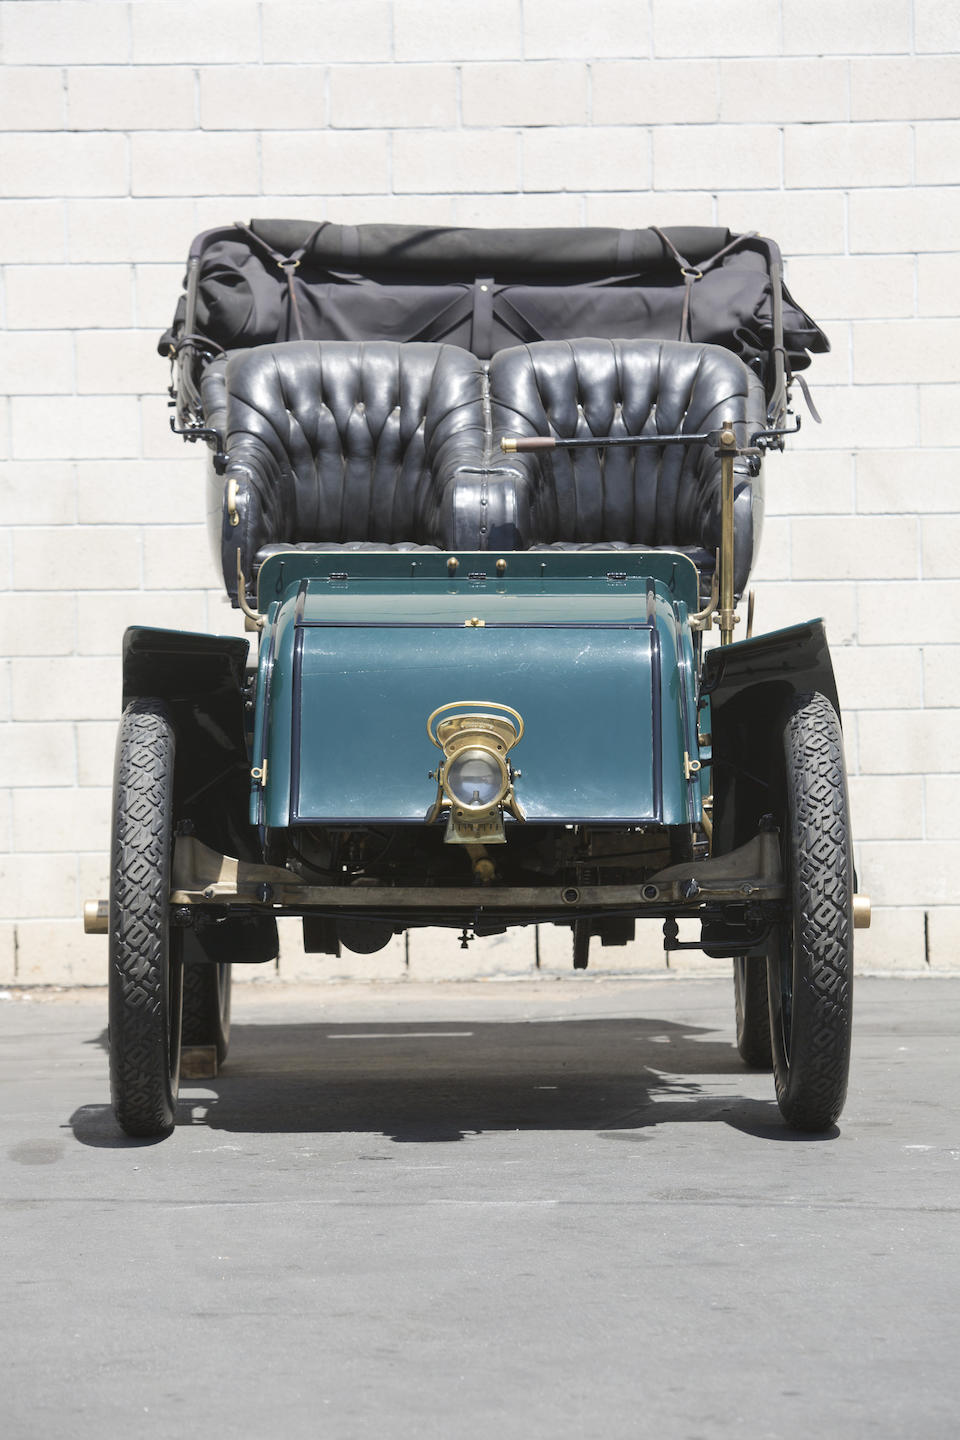 <b>1904 Knox 16/18HP Tudor 5-Passenger Touring</b><br />Chassis no. 312<br />Engine no. 839D